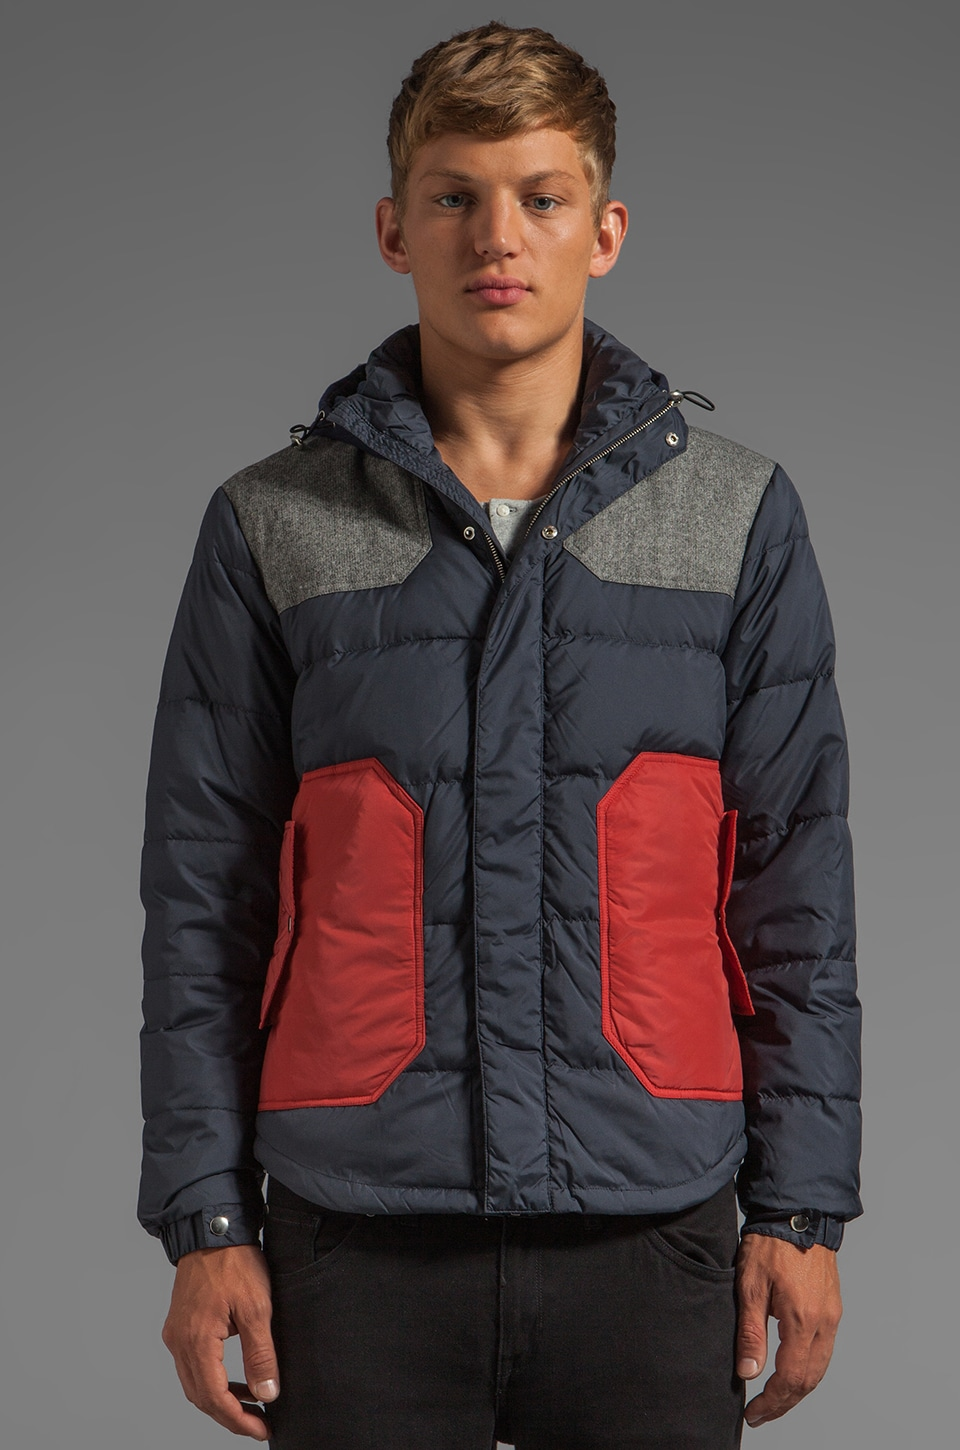 Shades of Grey by Micah Cohen Colorblock Down Jacket in Navy